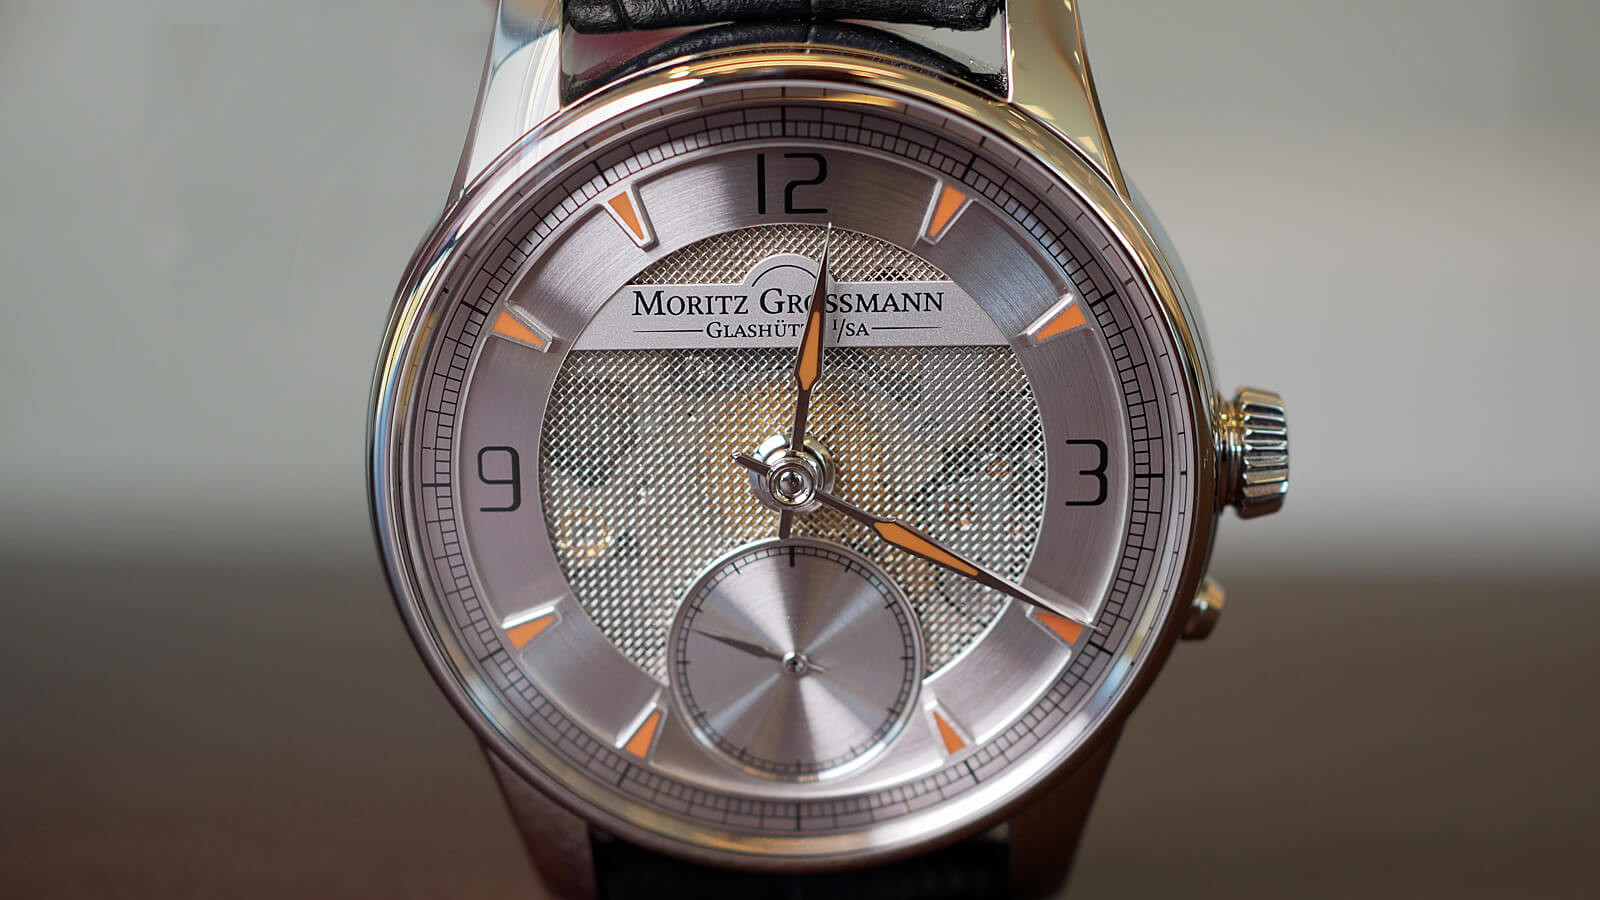 Moritz Grossmann ATUM Pure M with hand-wound movement and mesh dial